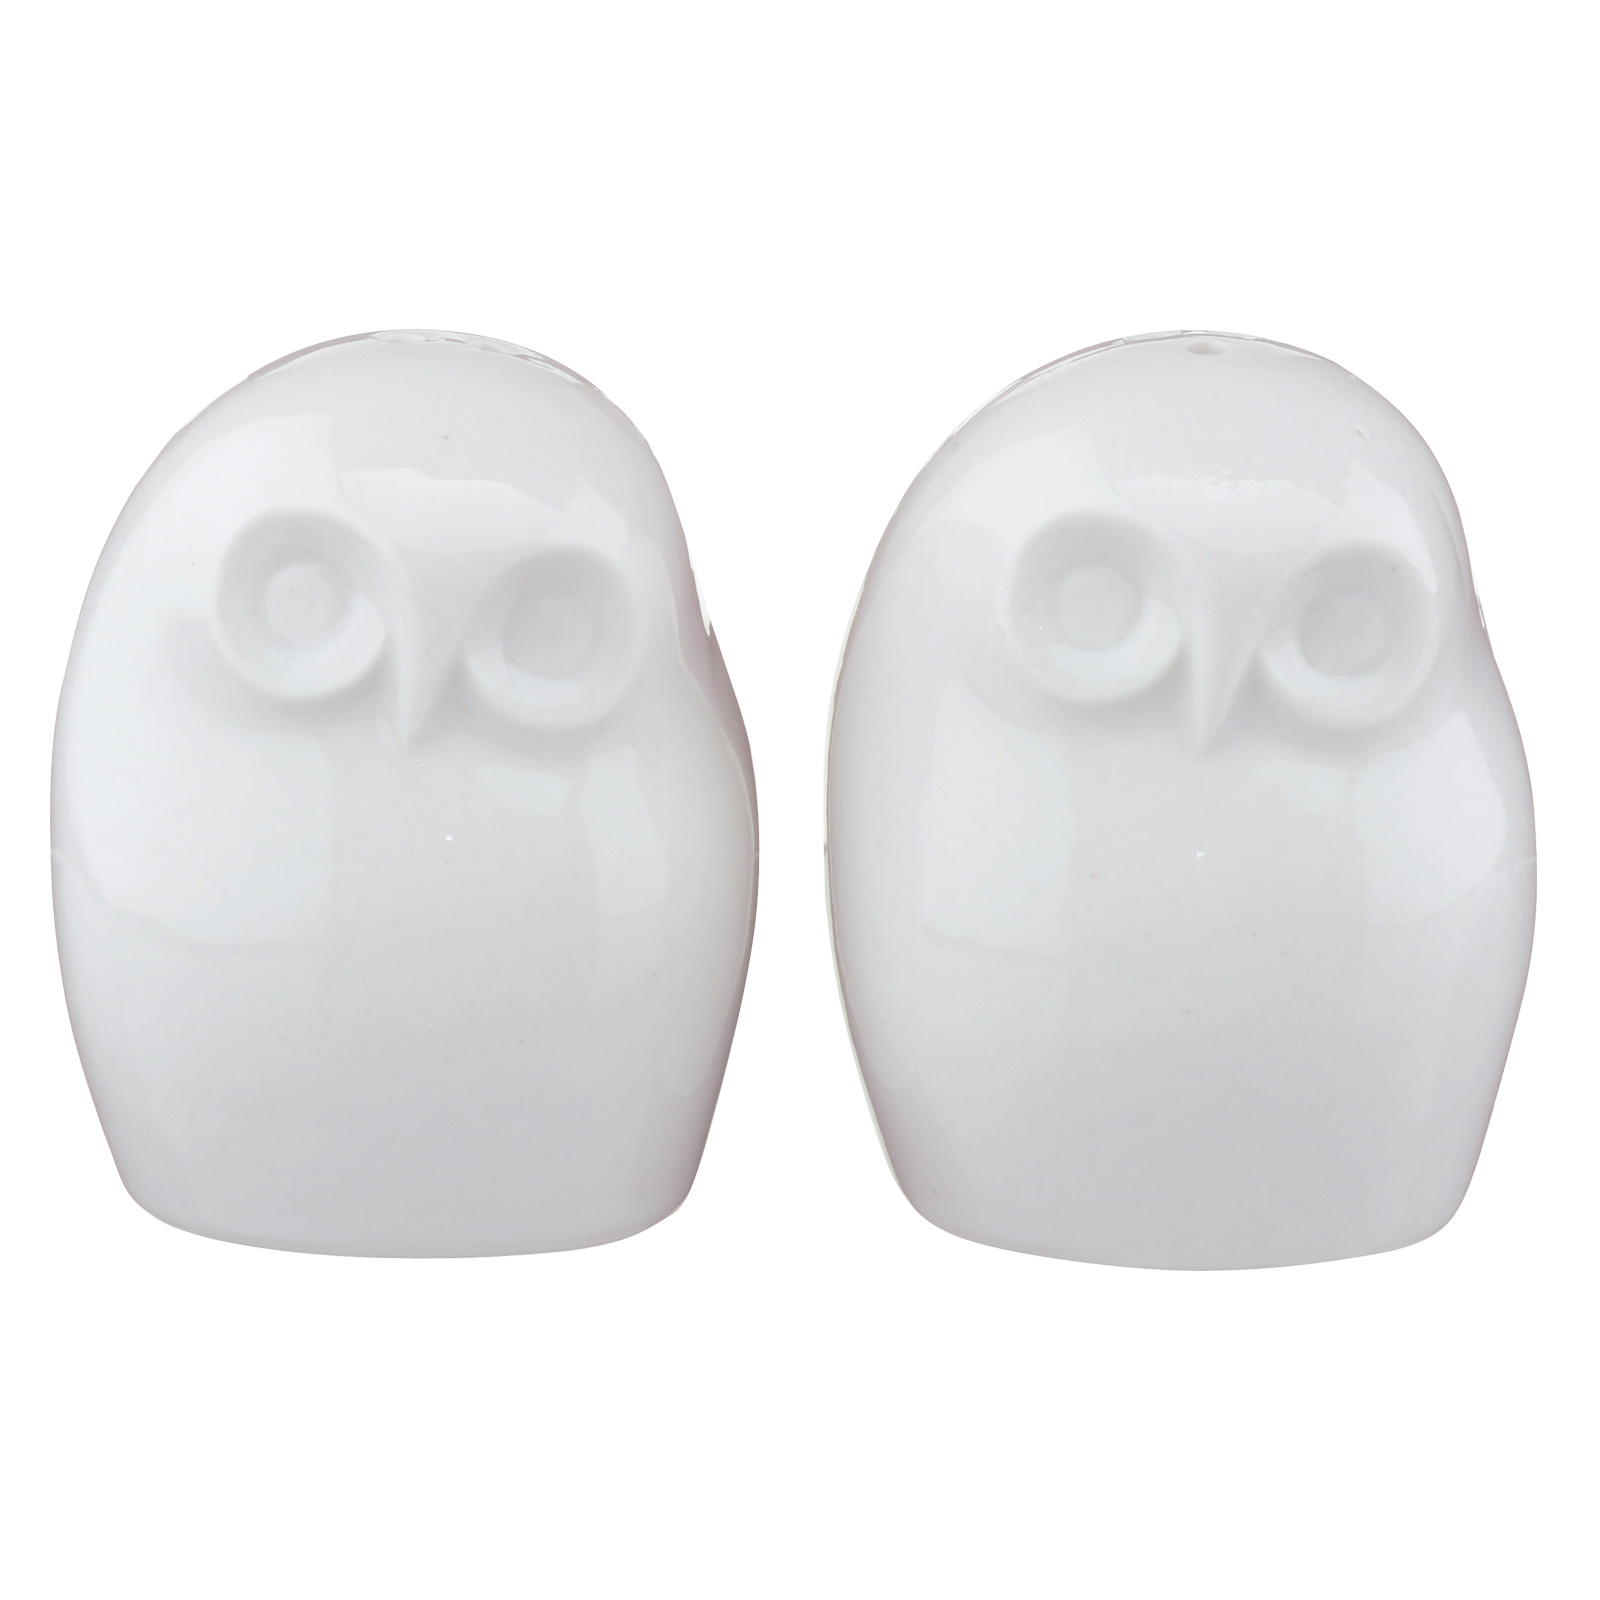 Owl Salt & Pepper Shakers by BIA